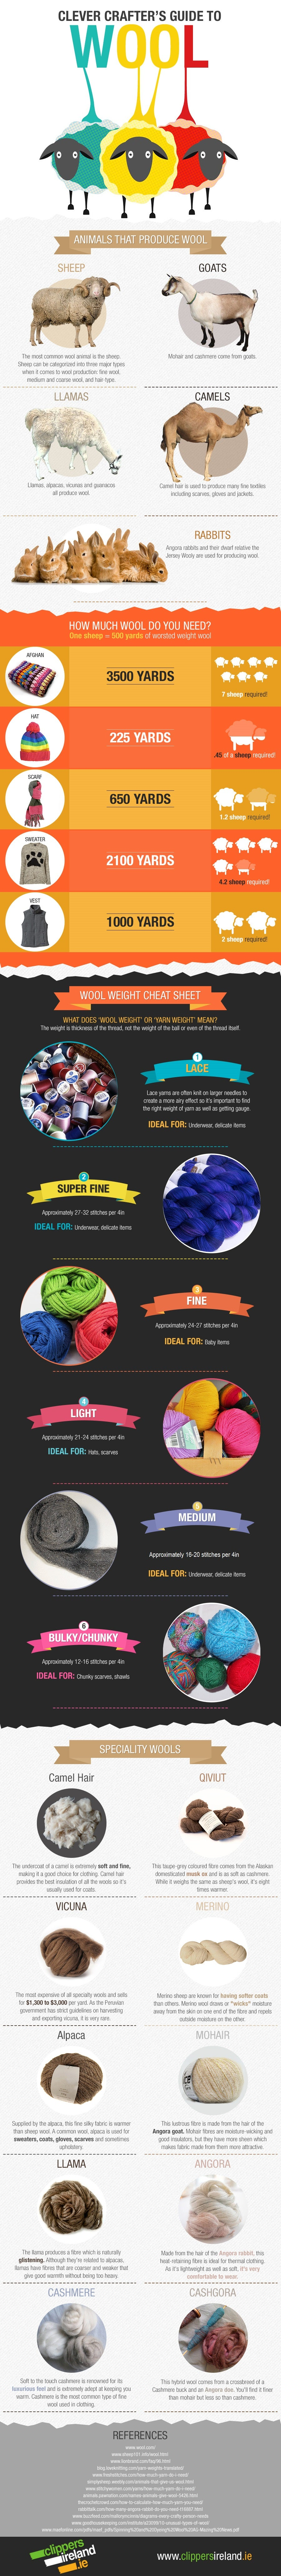 the various types of wool infographic